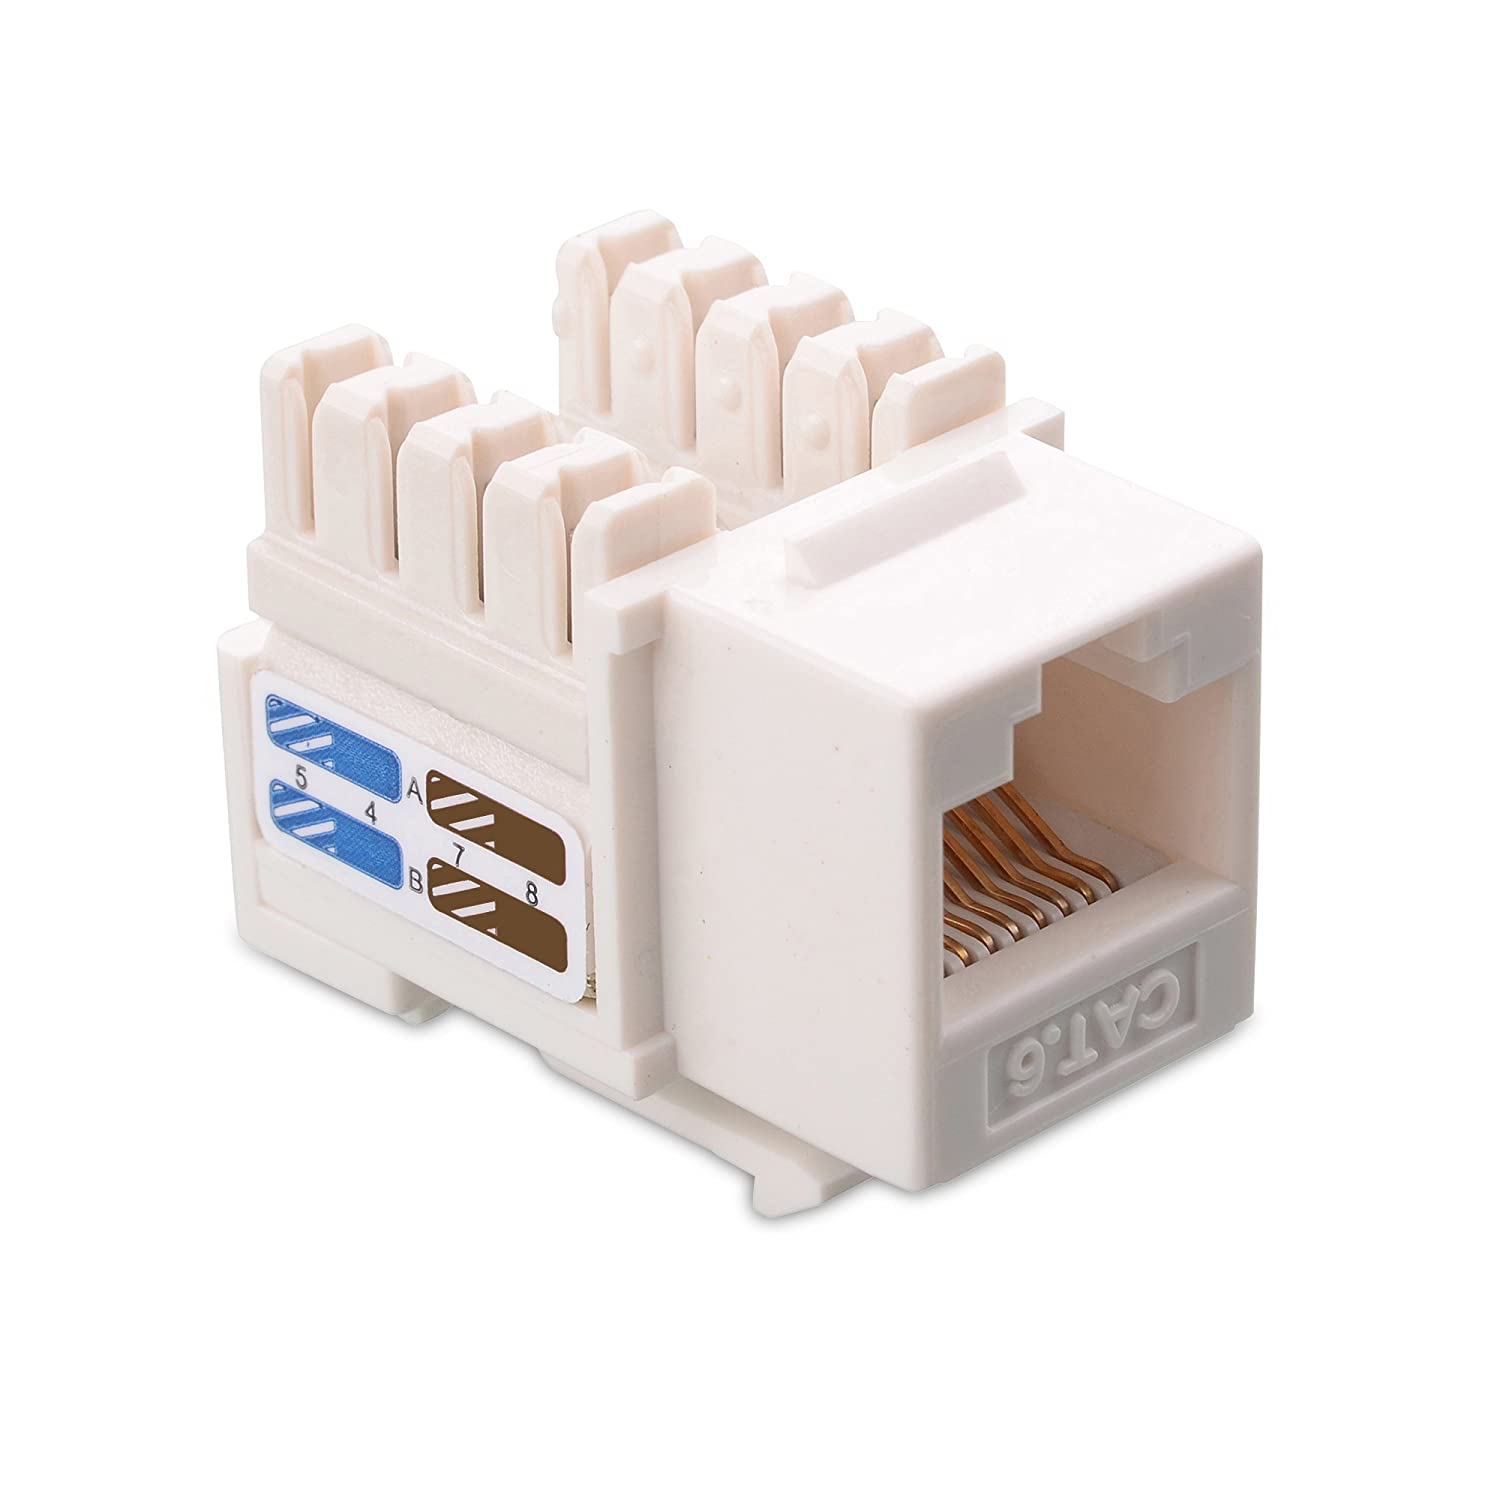 com cable matters pack cat rj keystone jack in white com cable matters 25 pack cat6 rj45 keystone jack in white and keystone punch down stand computers accessories